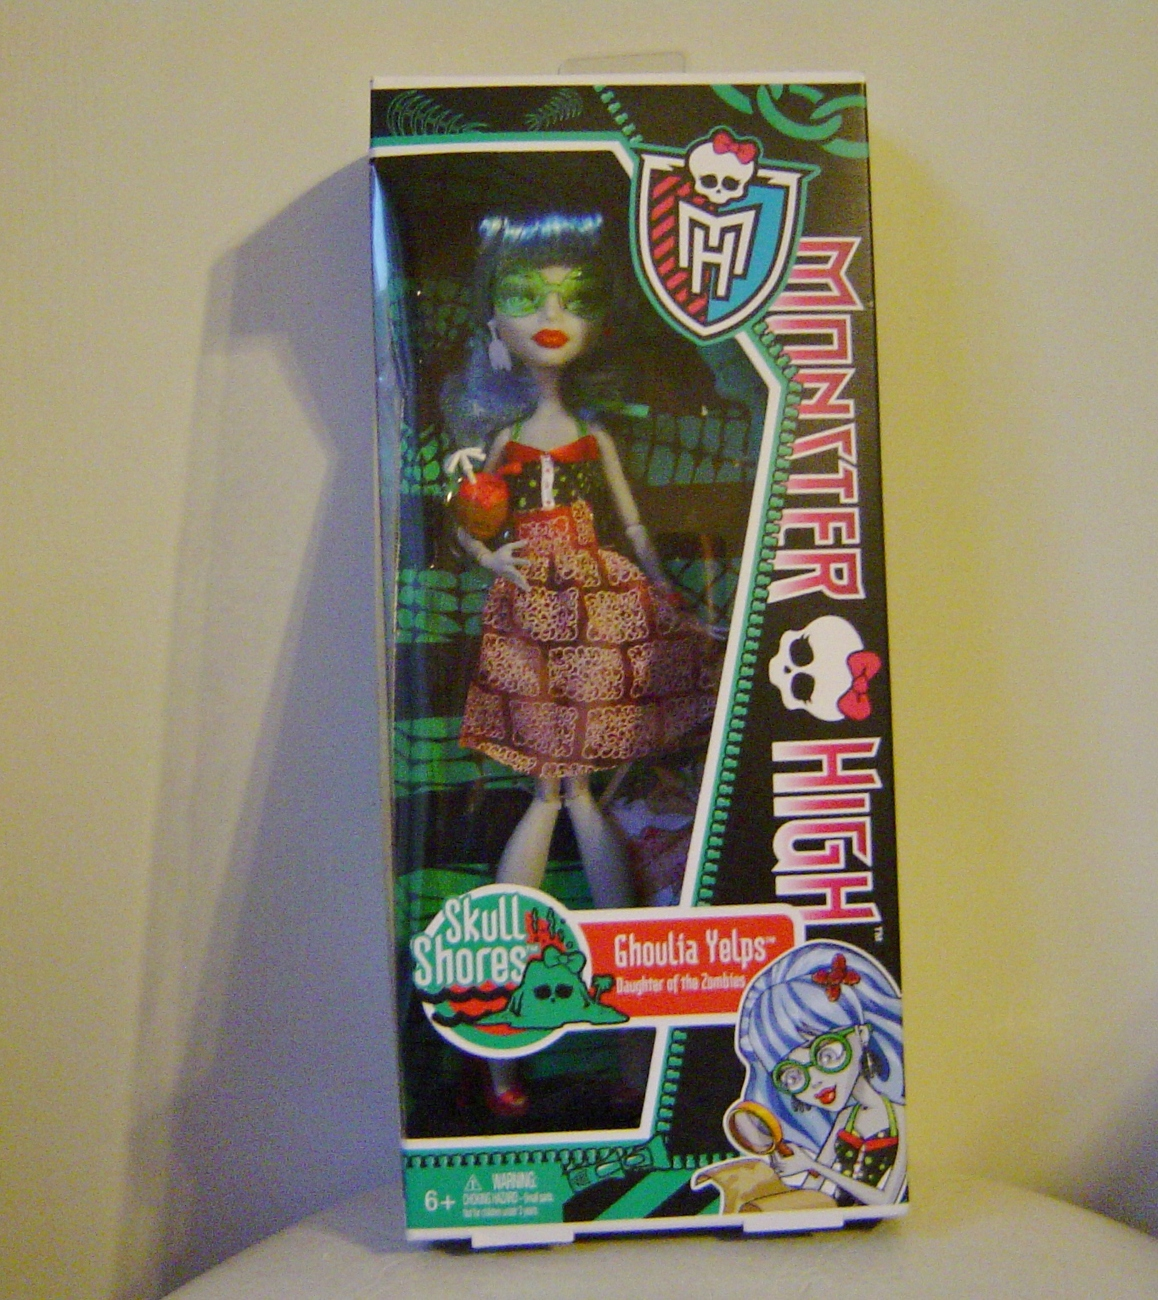 Monster High Skull Shores Ghoulia Yelps Doll